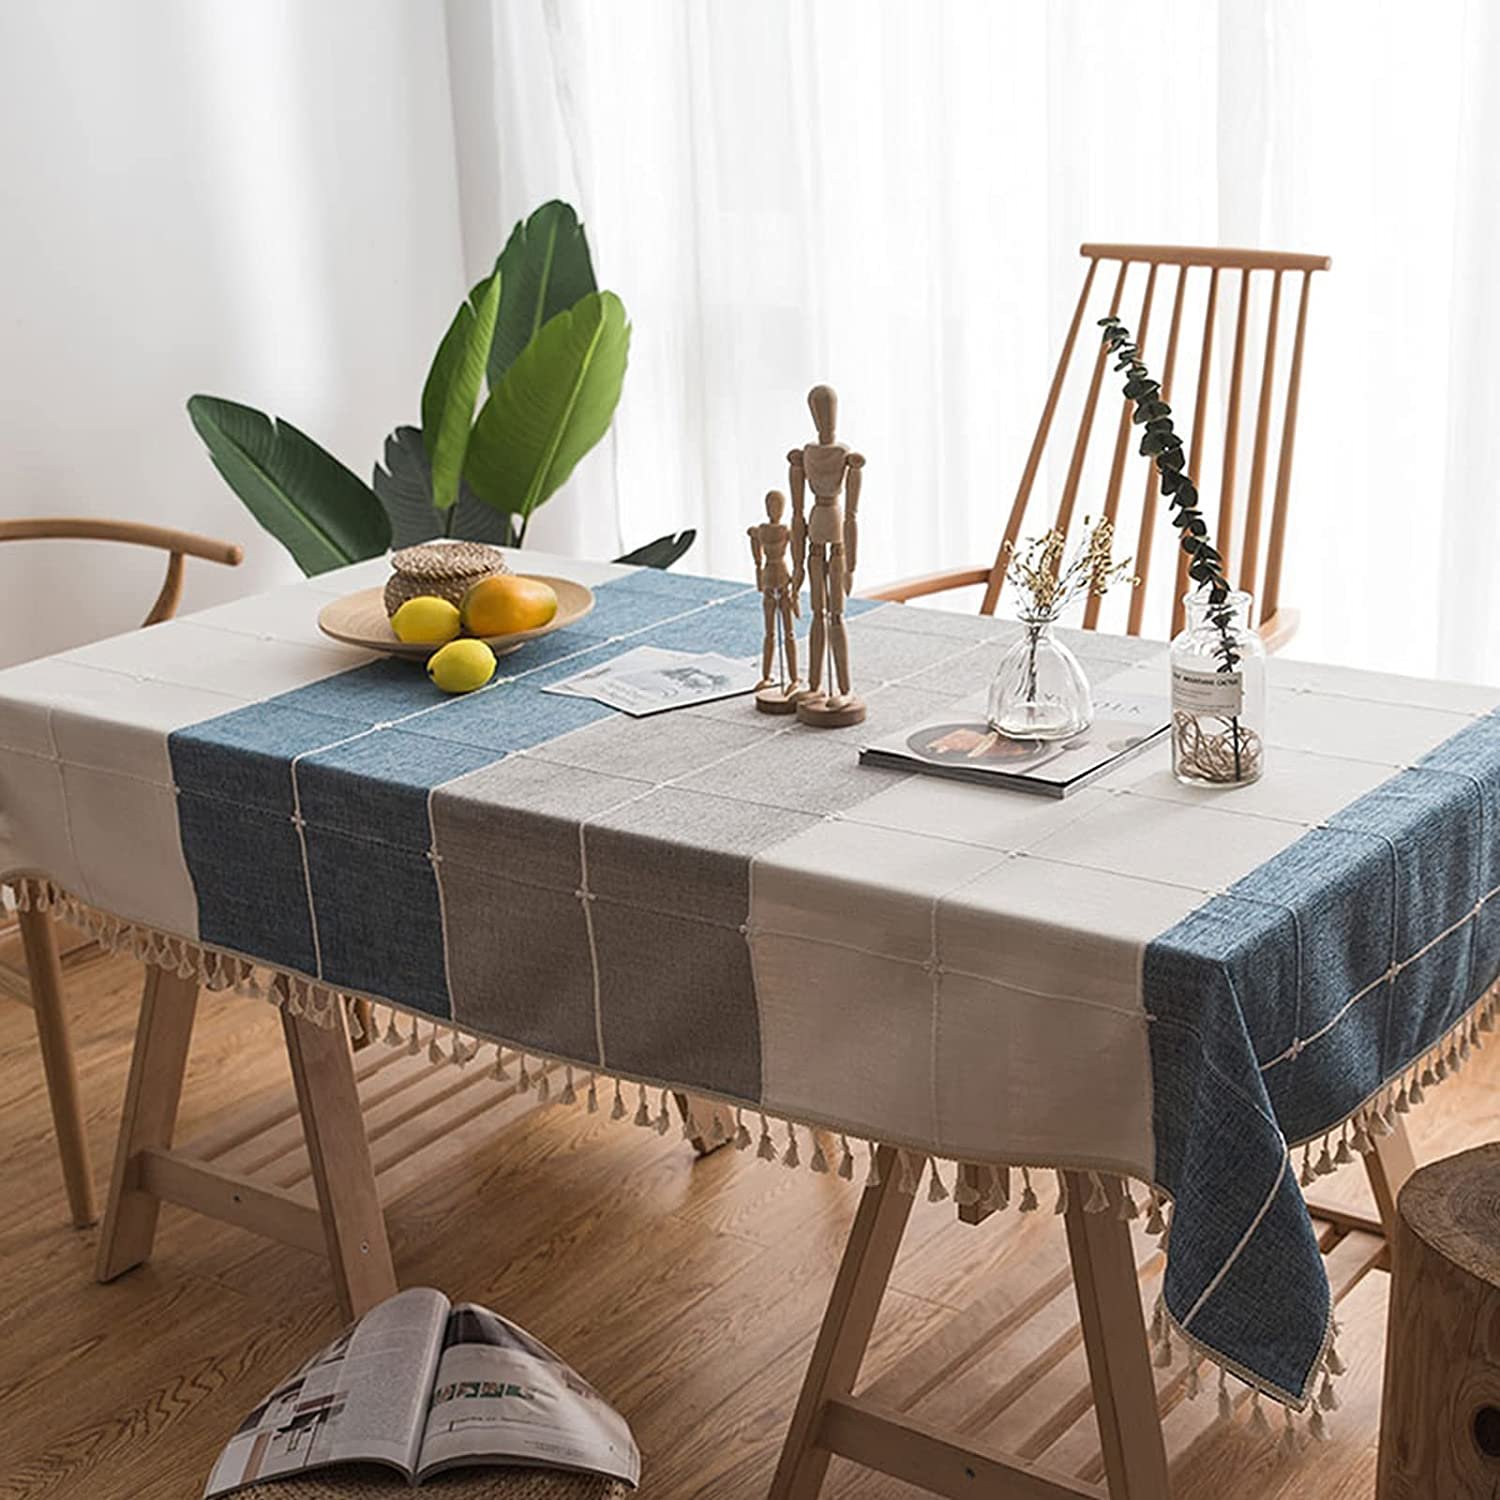 HWanss Tablecloths Oklahoma City Mall Rectangle Washable Table SEAL limited product Cloth Du Heavy Duty